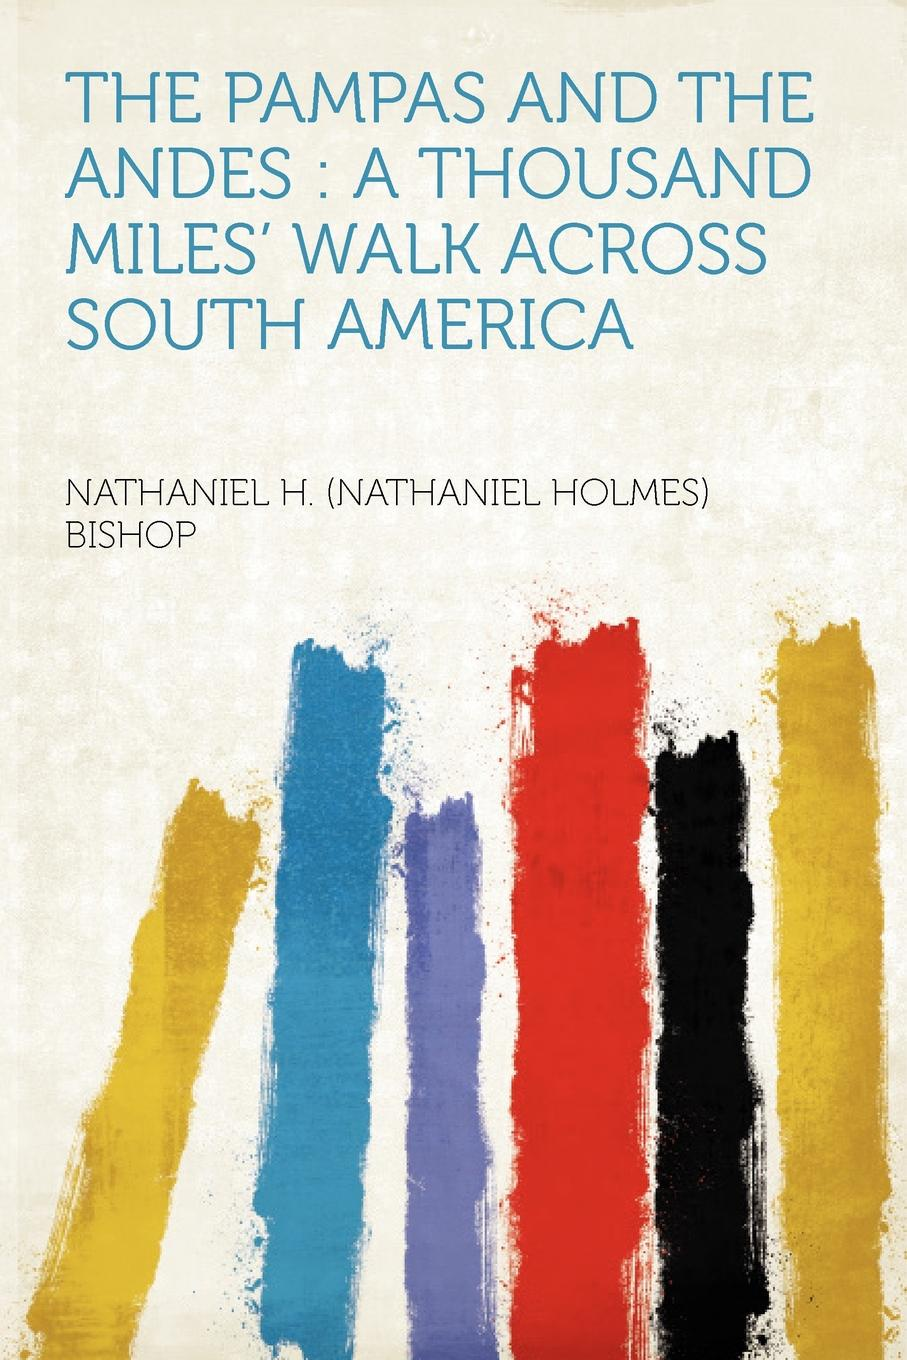 The Pampas and the Andes. a Thousand Miles. Walk Across South America